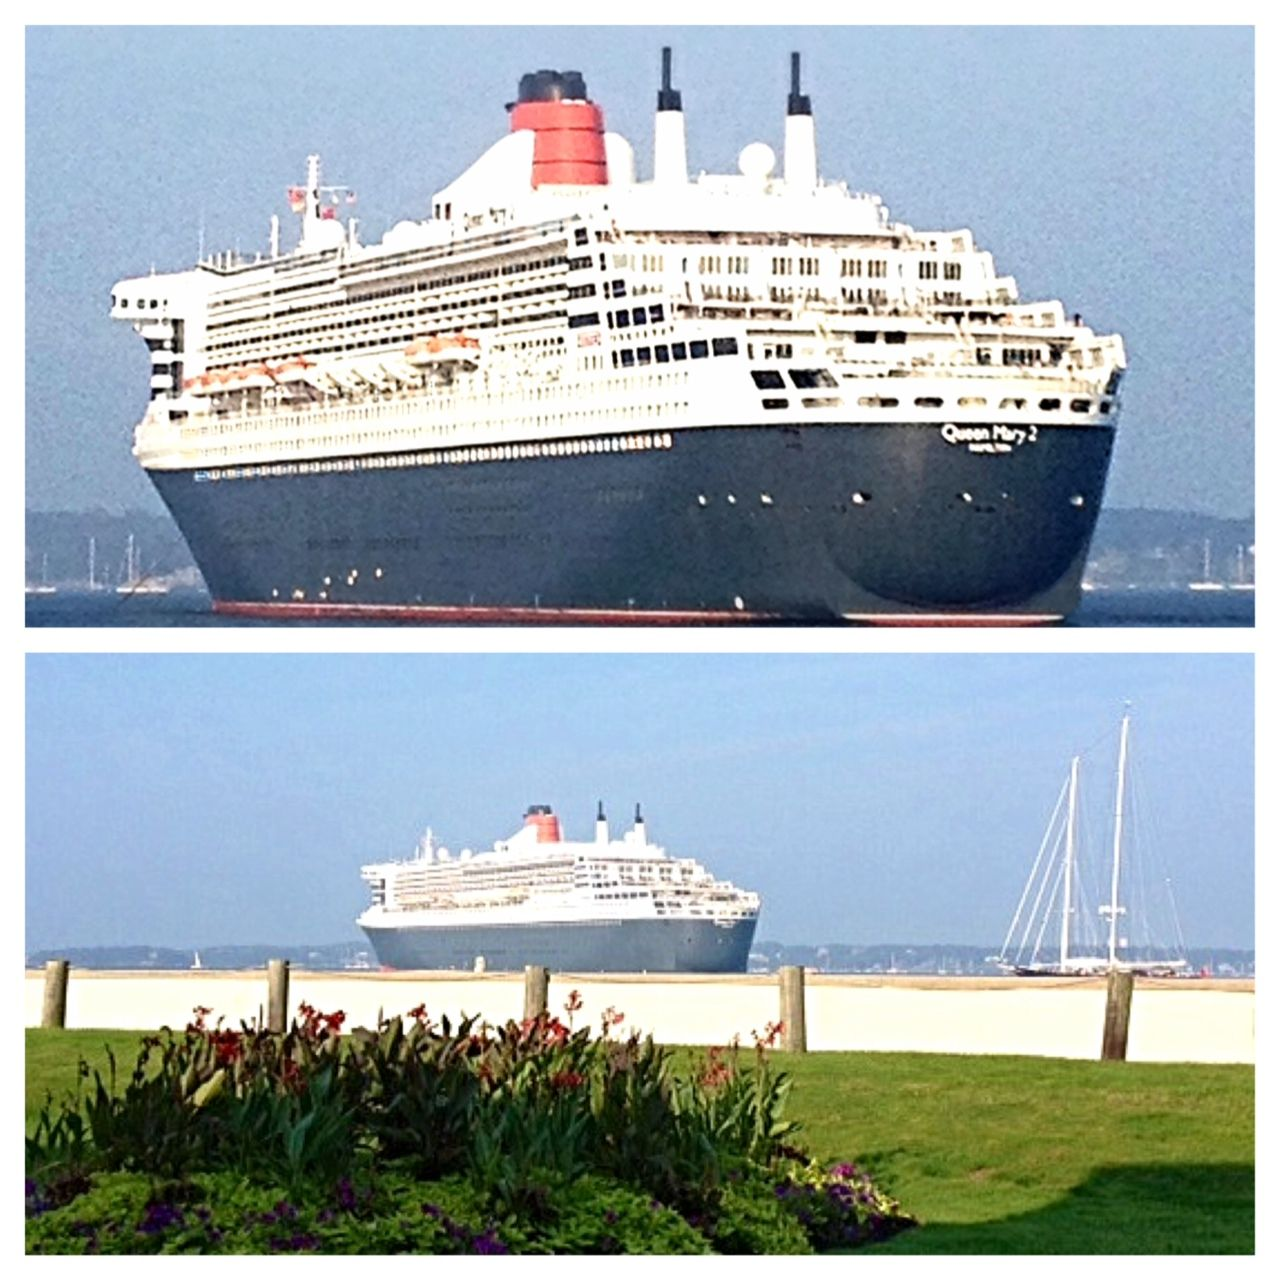 Queen Mary 2 in the harbor 9/11/13